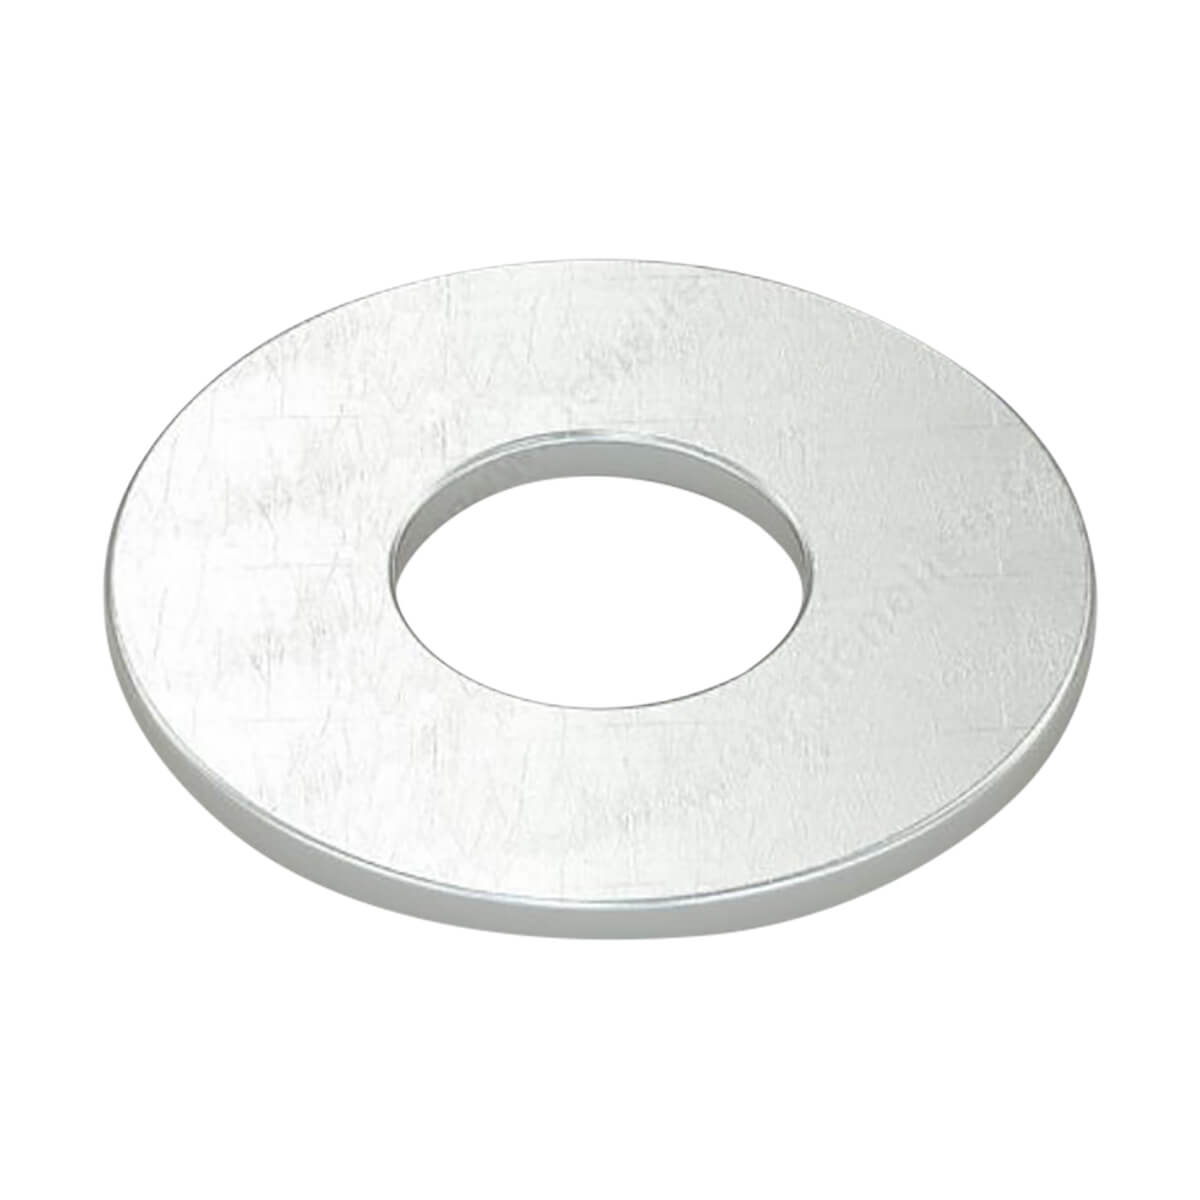 Washer - Flat - 3/8-in - 2400 Pieces